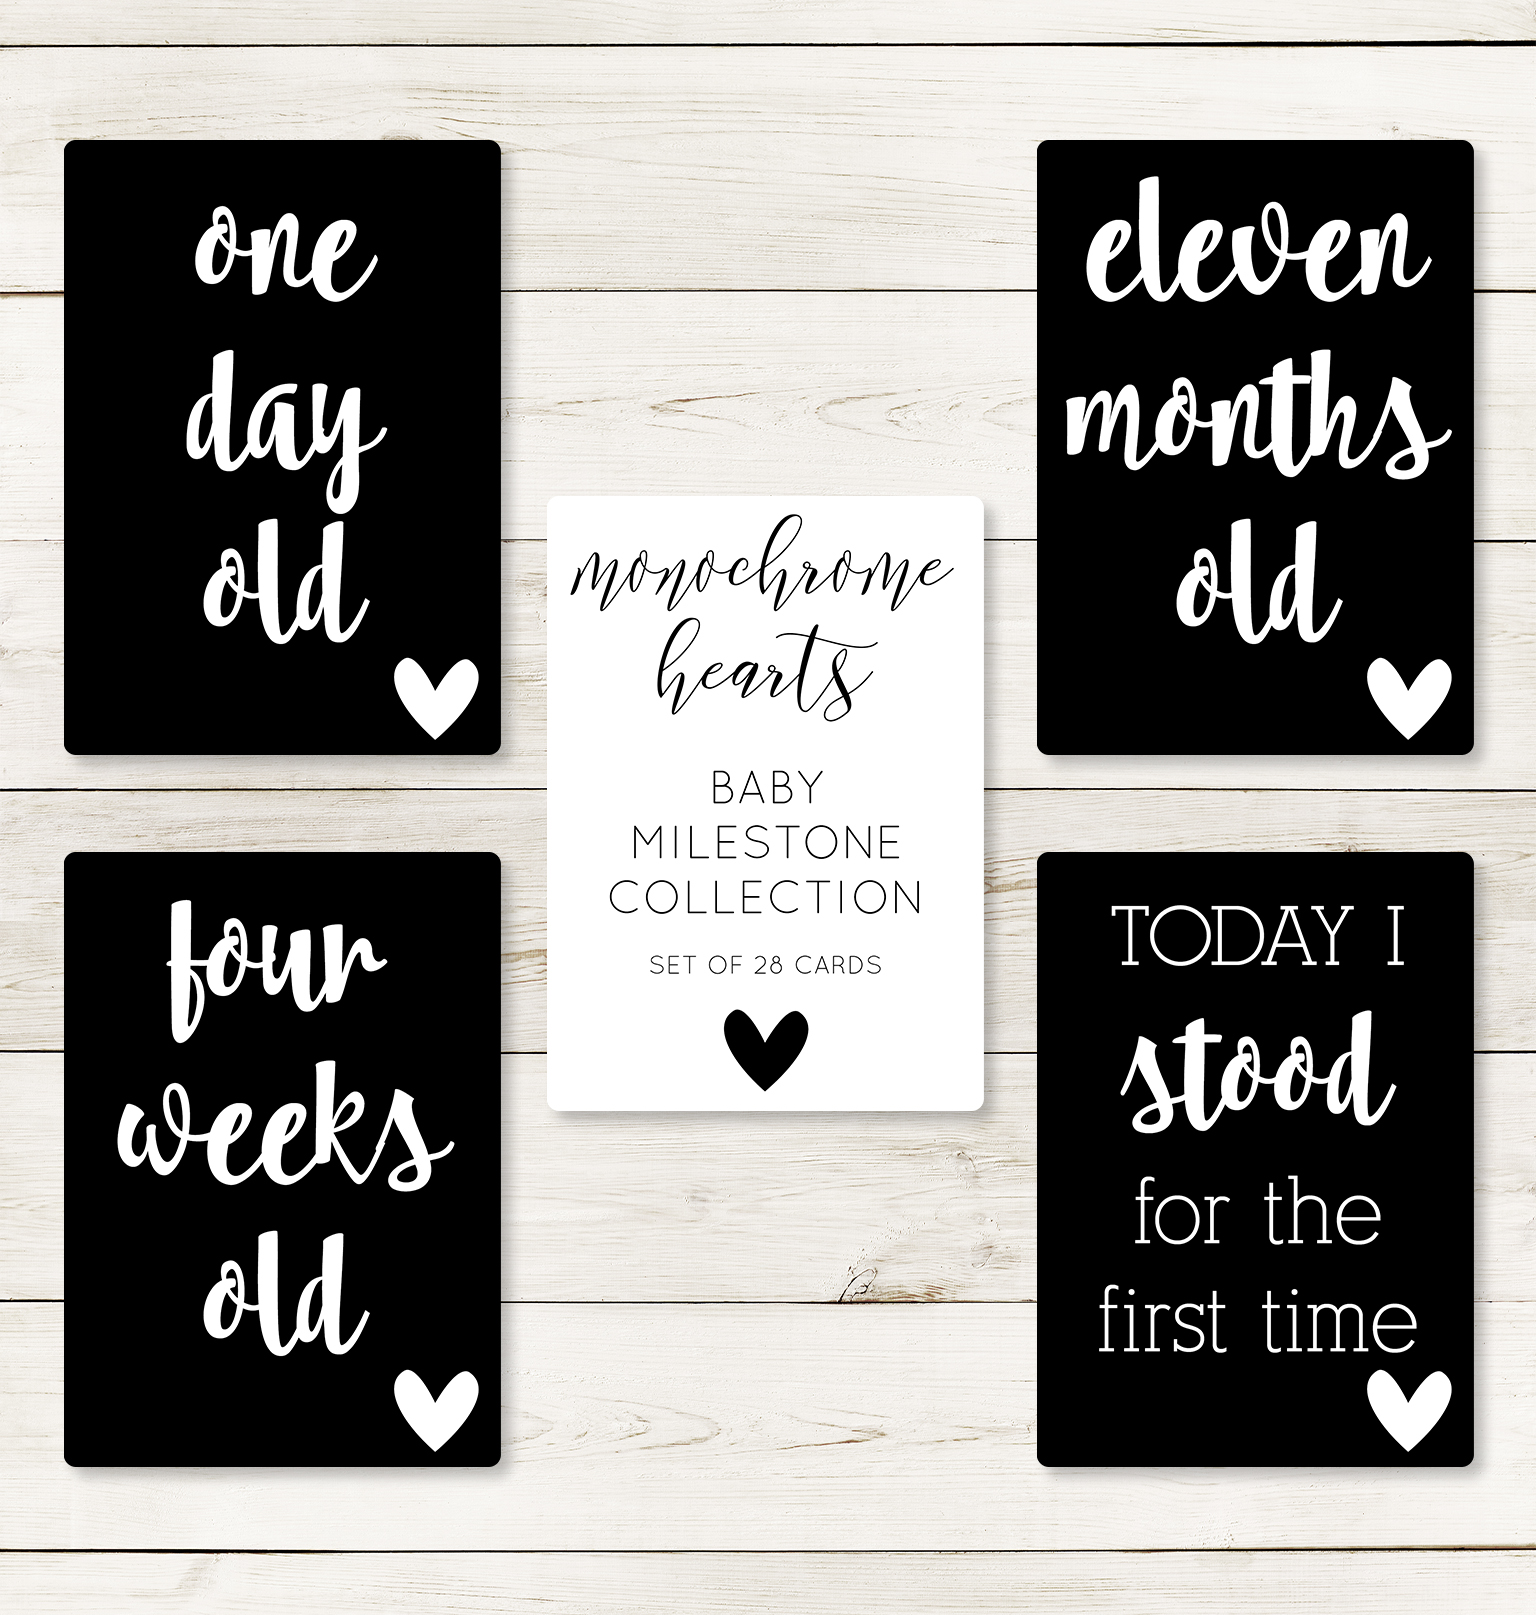 Monochrome Hearts Milestone Cards